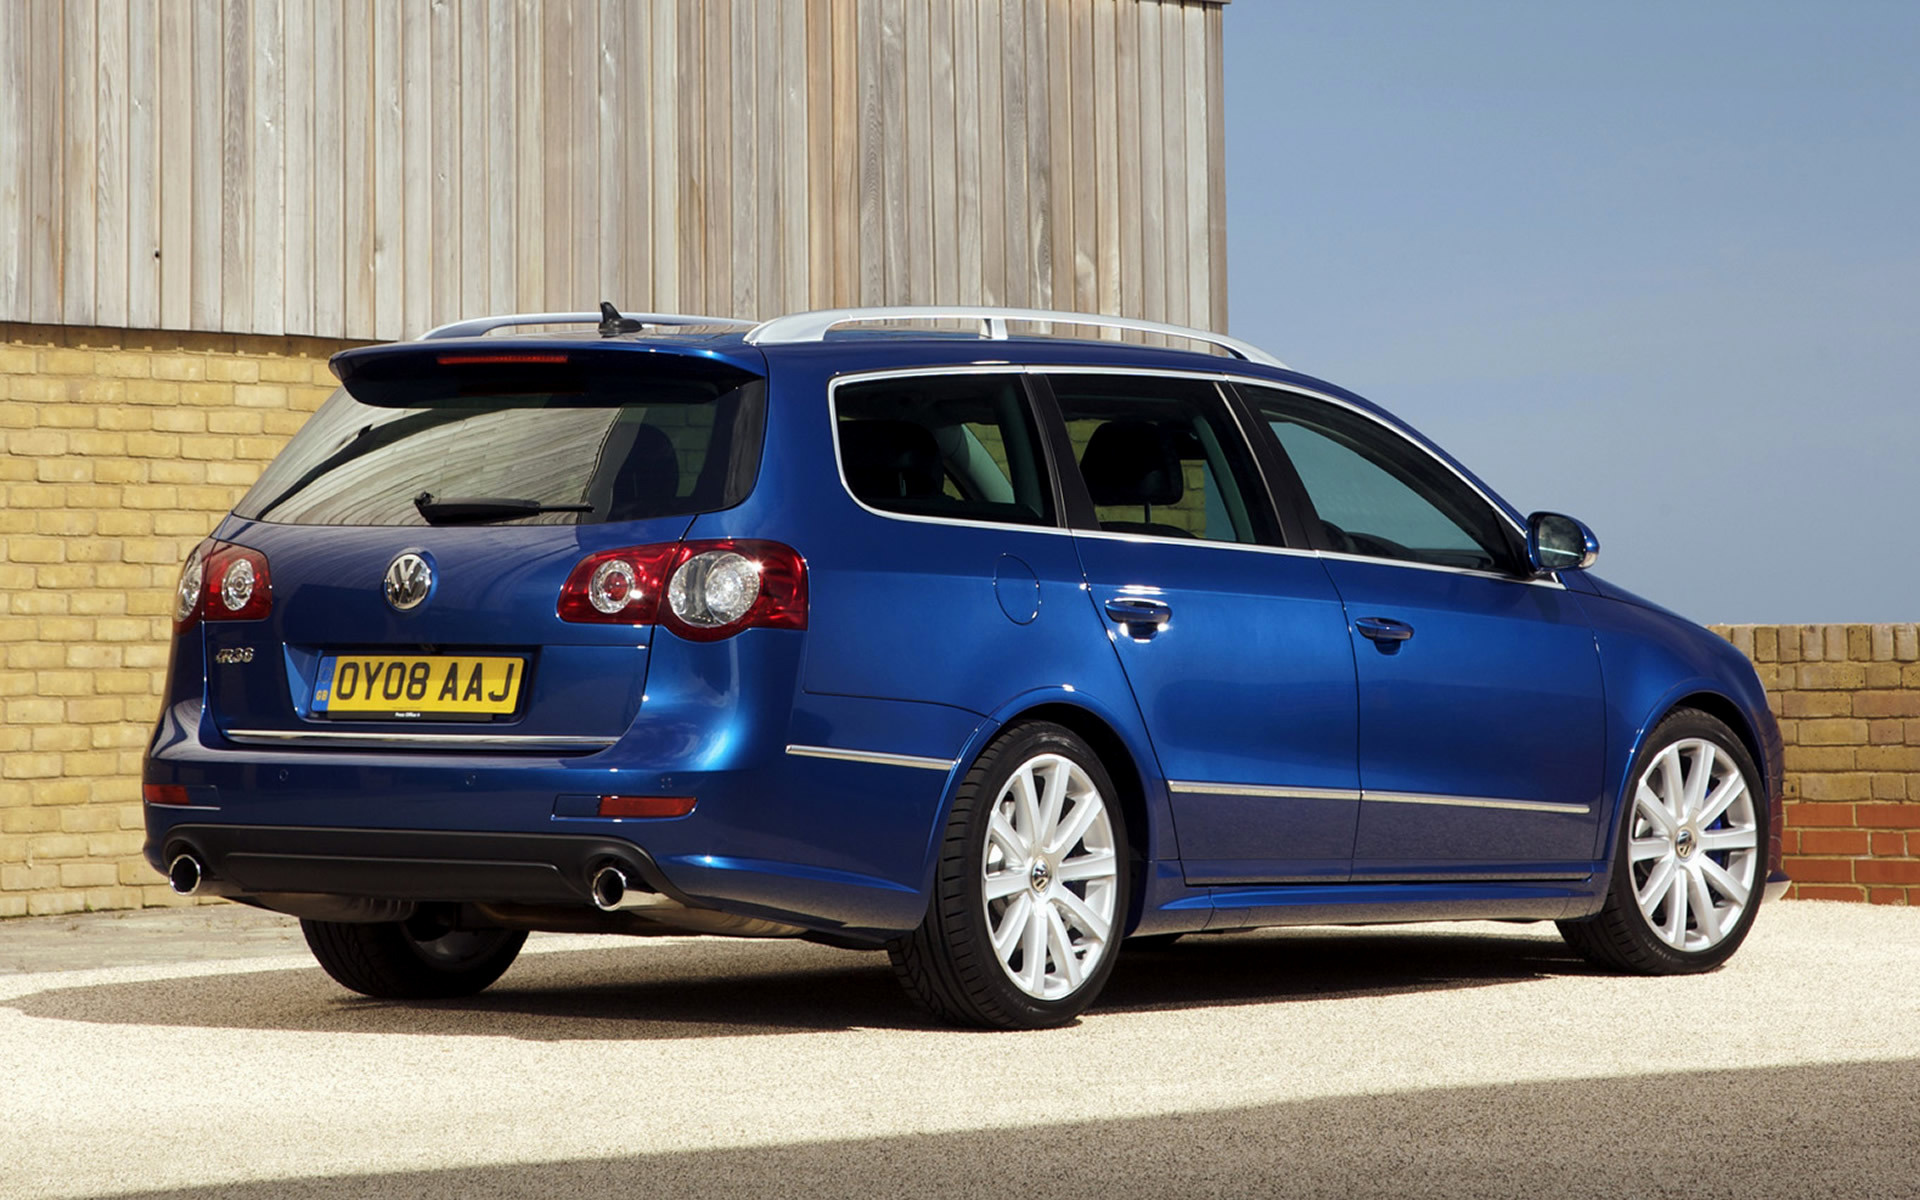 Ed Martin Gmc >> 2008 Volkswagen Passat R36 Estate (UK) - Wallpapers and HD ...